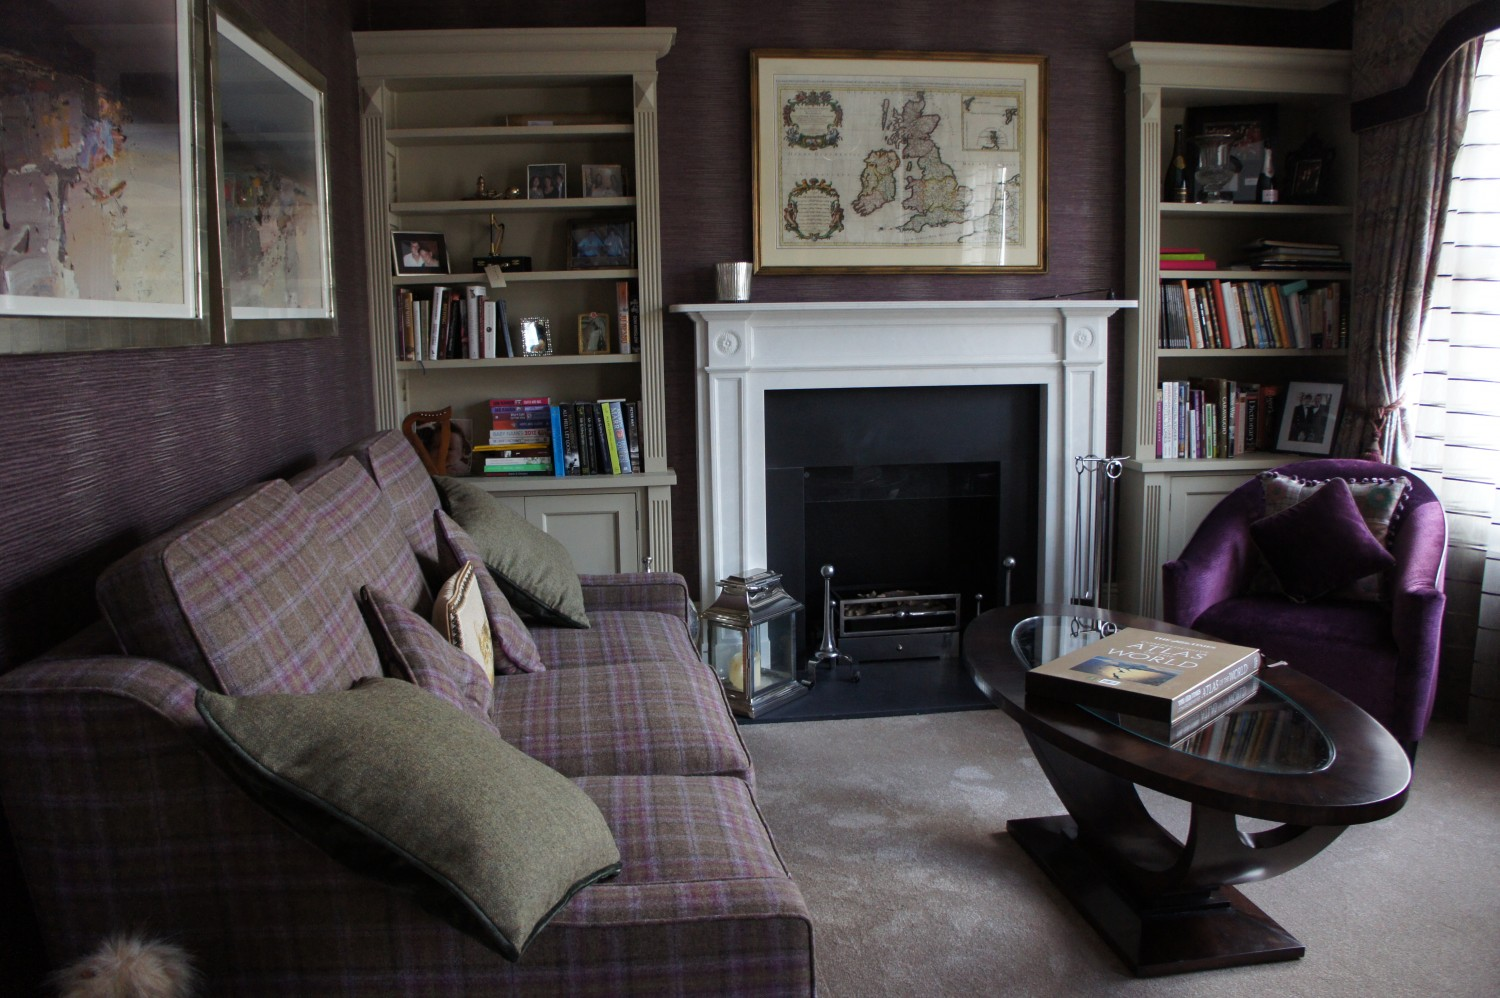 Room-Fulham-overview-of-snug